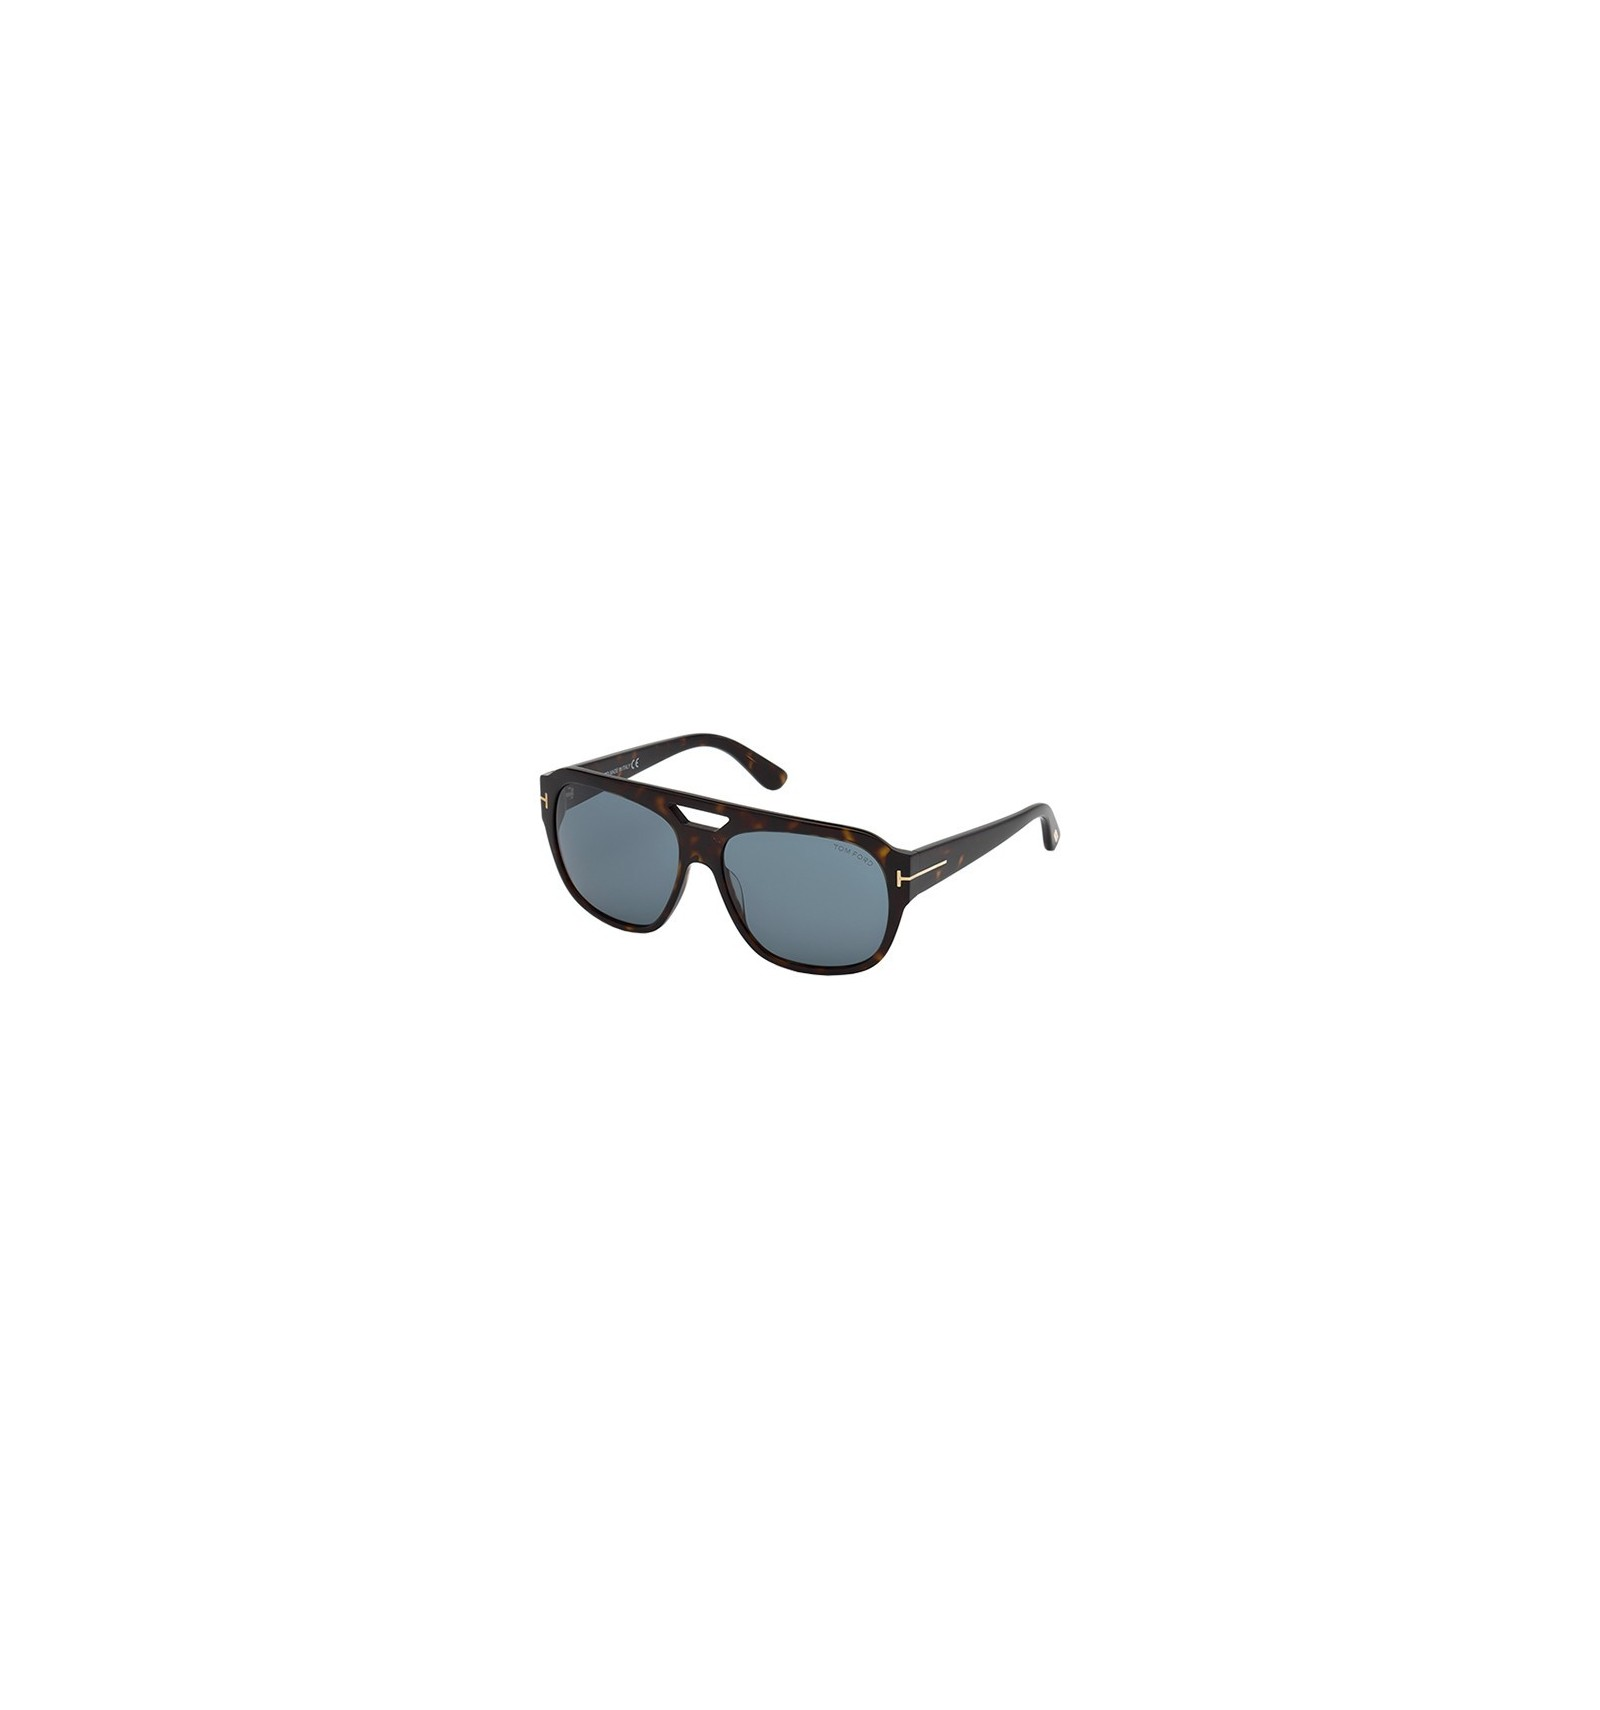 e9c9f81a26 Gafas de Sol Tom Ford FT0630 BACHARDY Dark Havana - Blue. Compra Online